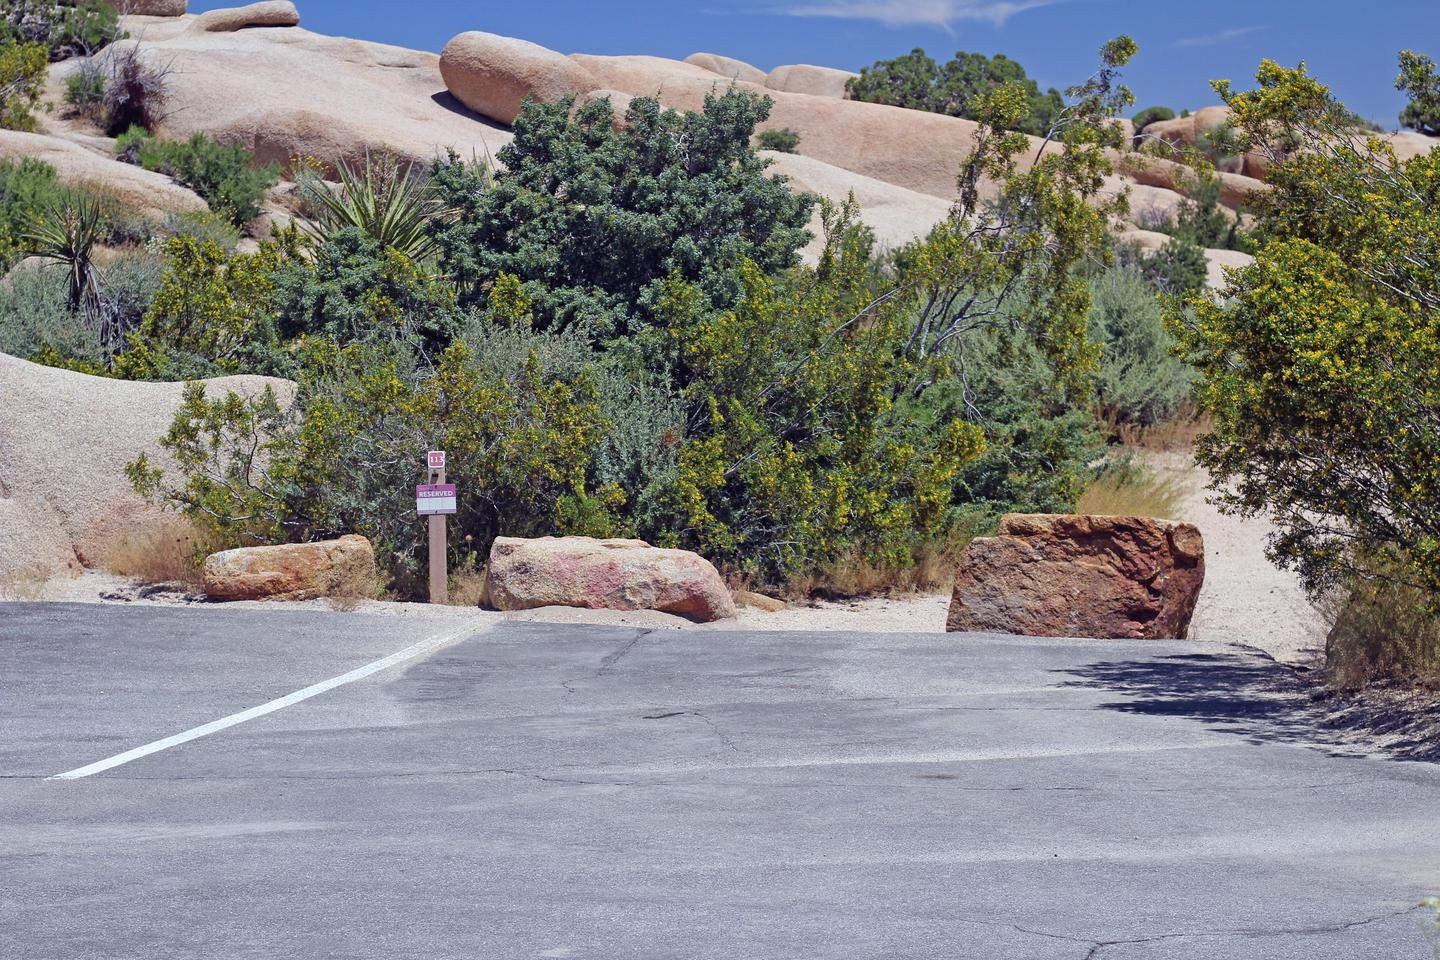 Parking for campsite.